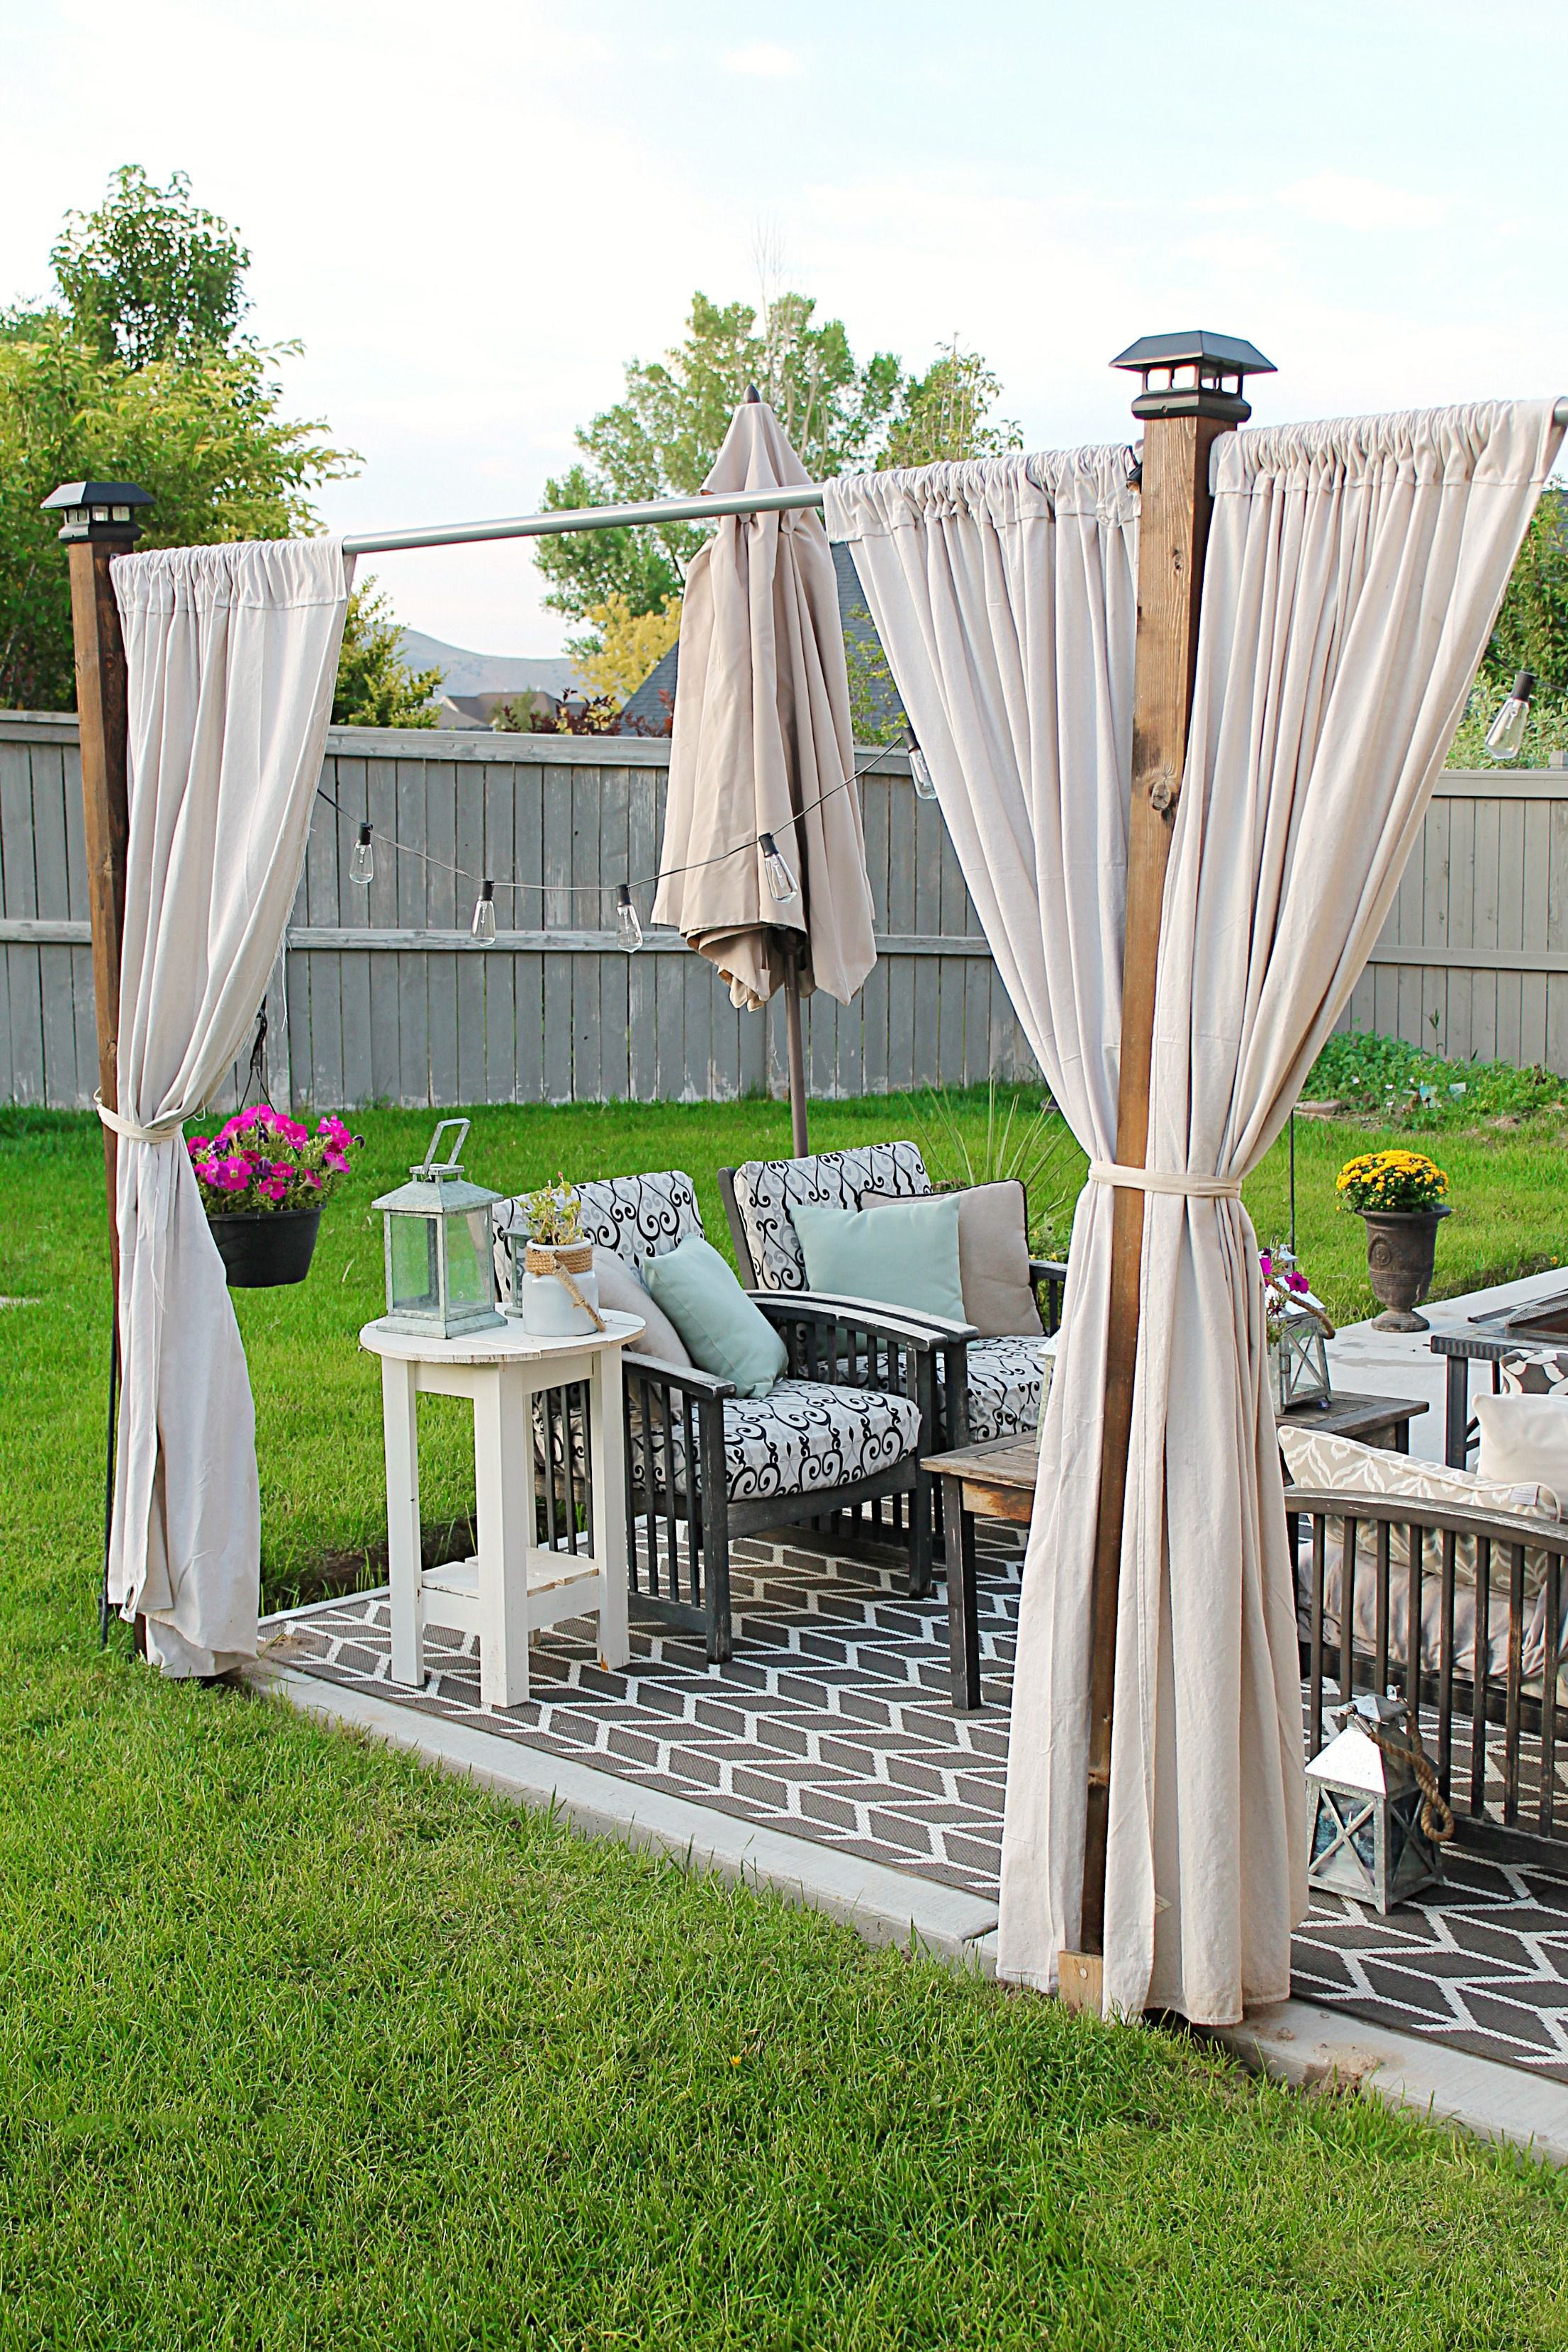 15 Ways To Gain Privacy In Your Yard for Backyard Privacy Ideas Cheap